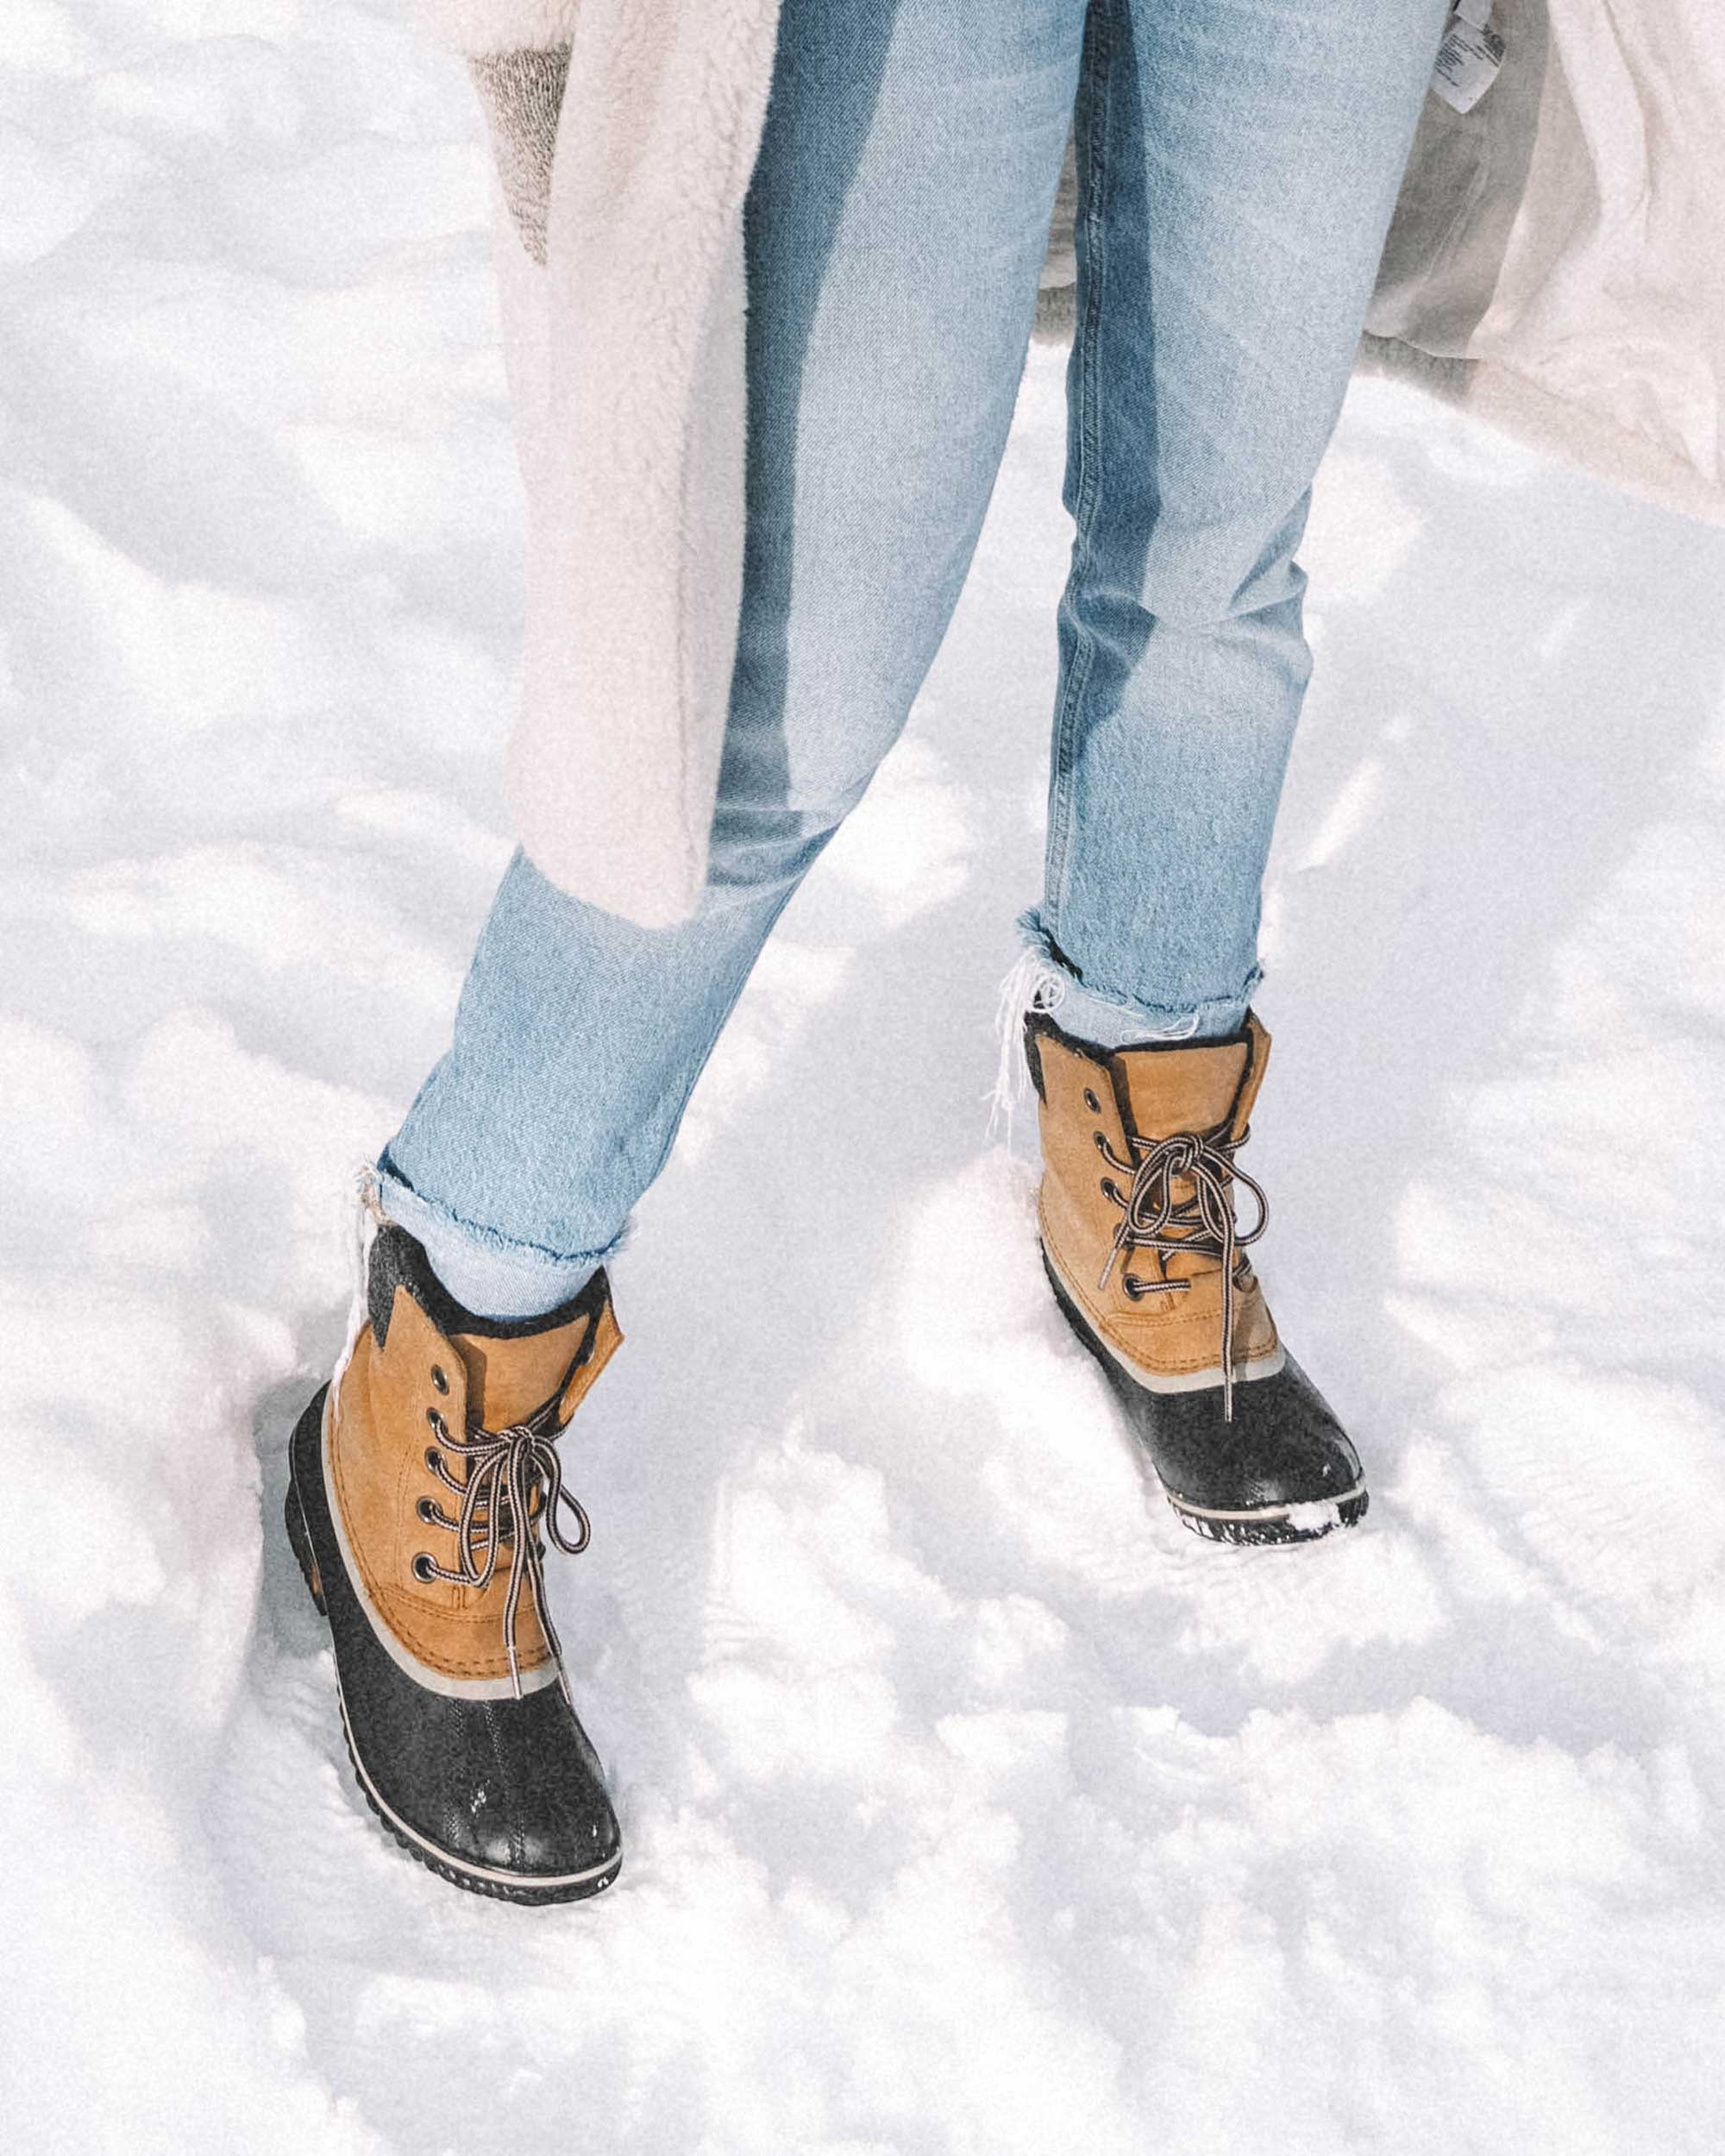 Winter snow outfit white faux shearling coat and sorel boots with jeans whislter canada13.jpg